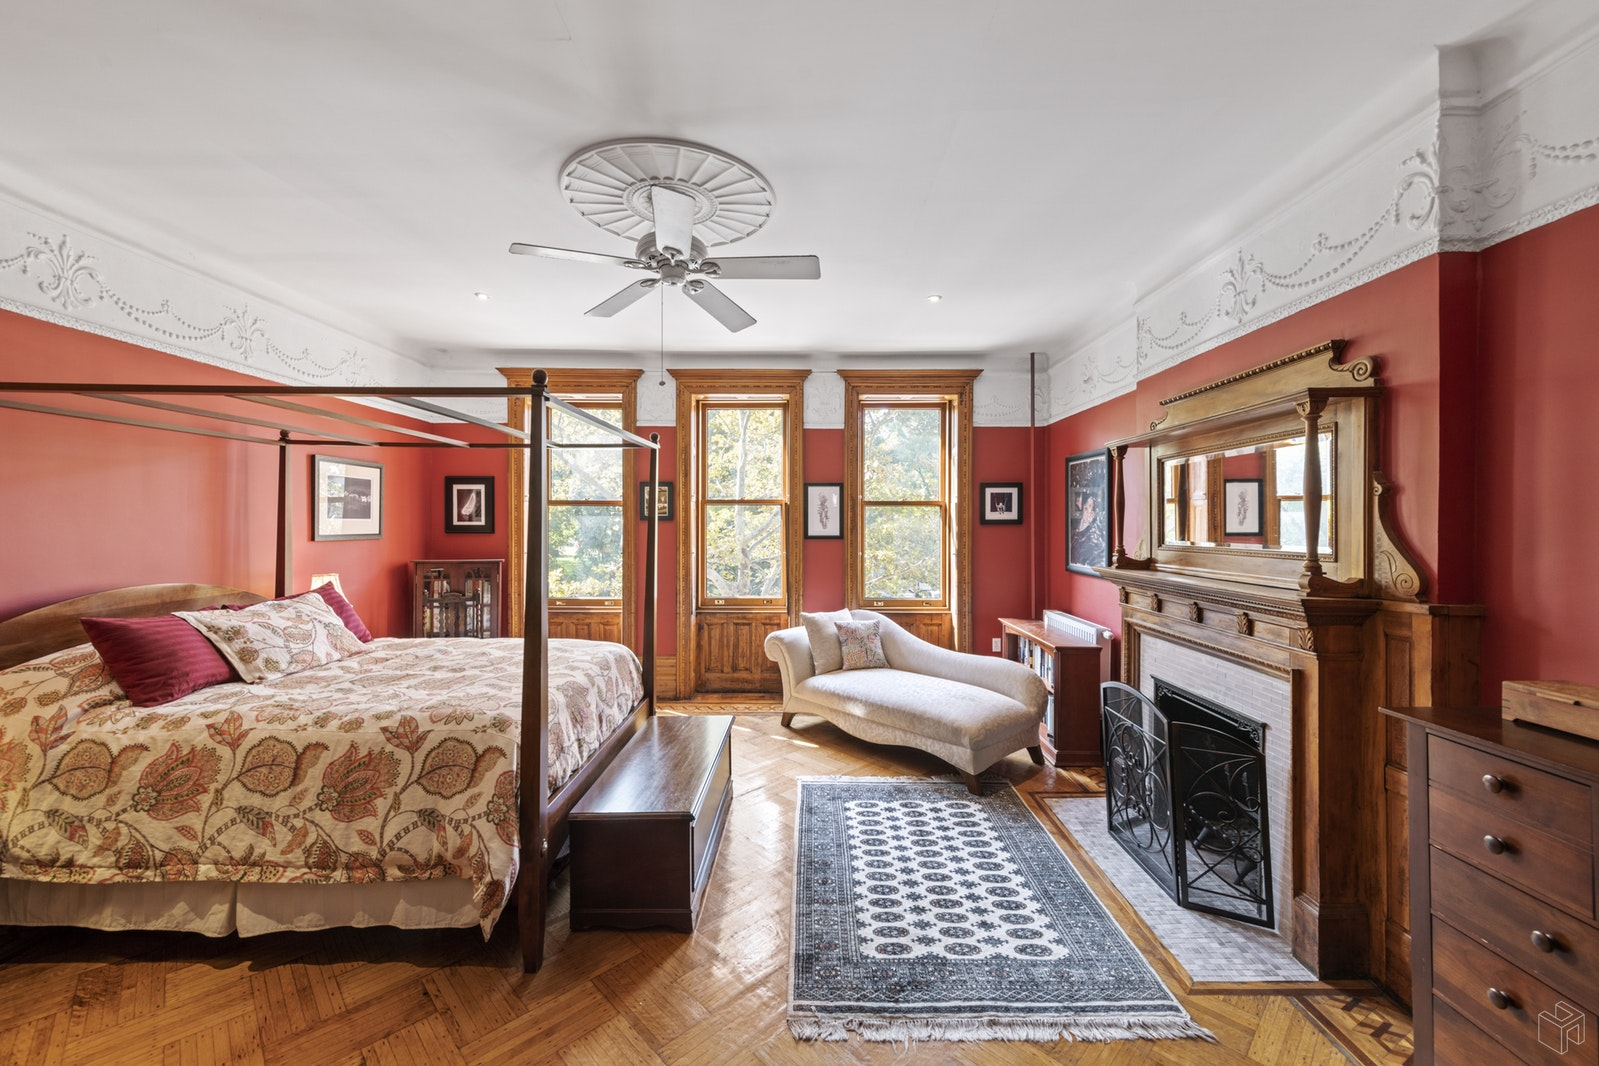 Illustrious Hamilton Heights Townhouse, Upper Manhattan, NYC, 10032, $2,795,000, Property For Sale, Halstead Real Estate, Photo 6